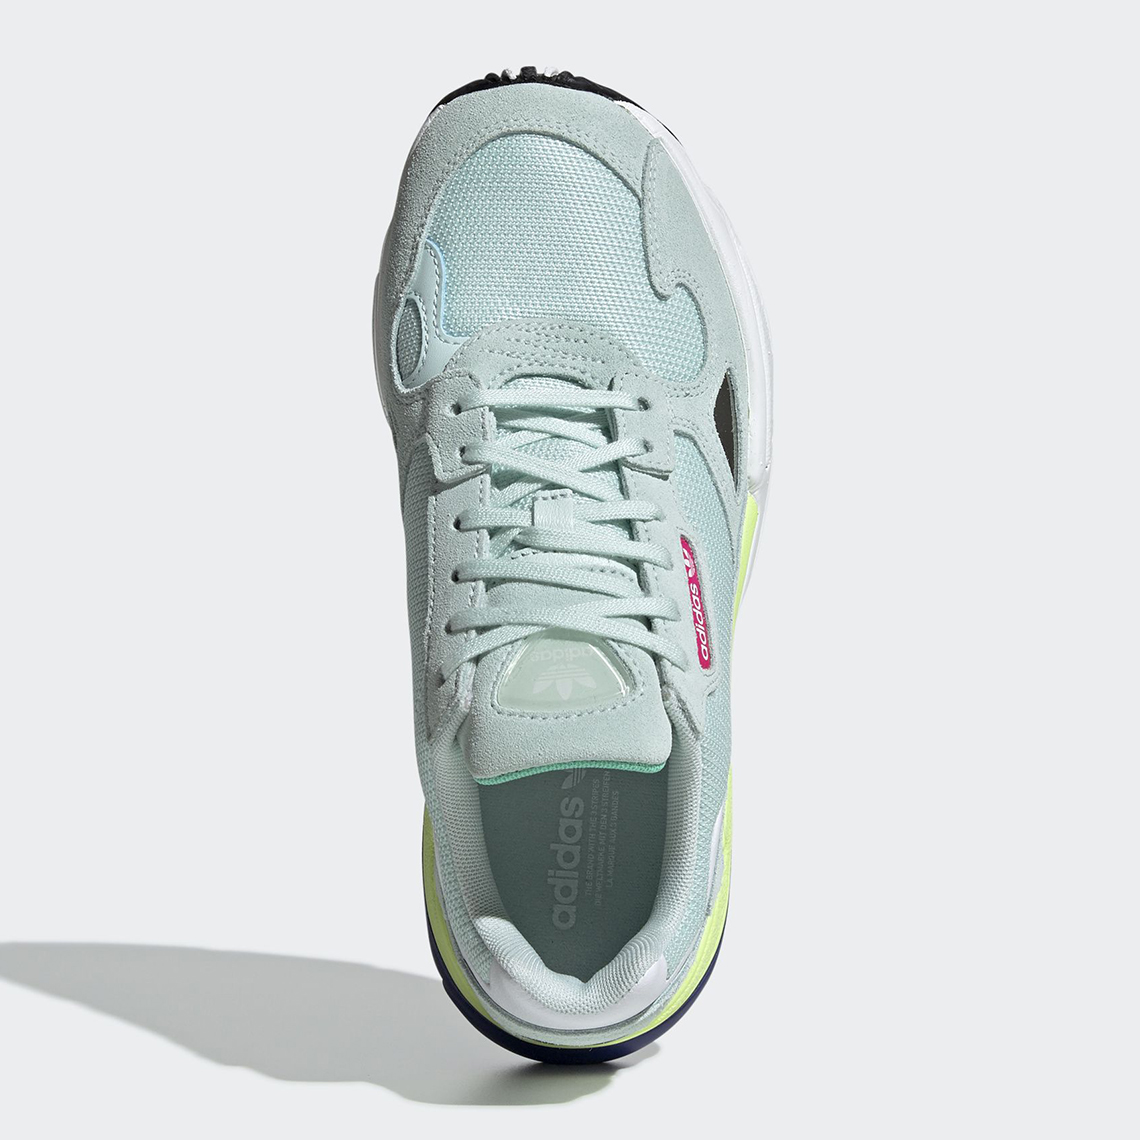 a4c943c5 adidas Falcon Ice Mint CG6218 Release Date | SneakerNews.com